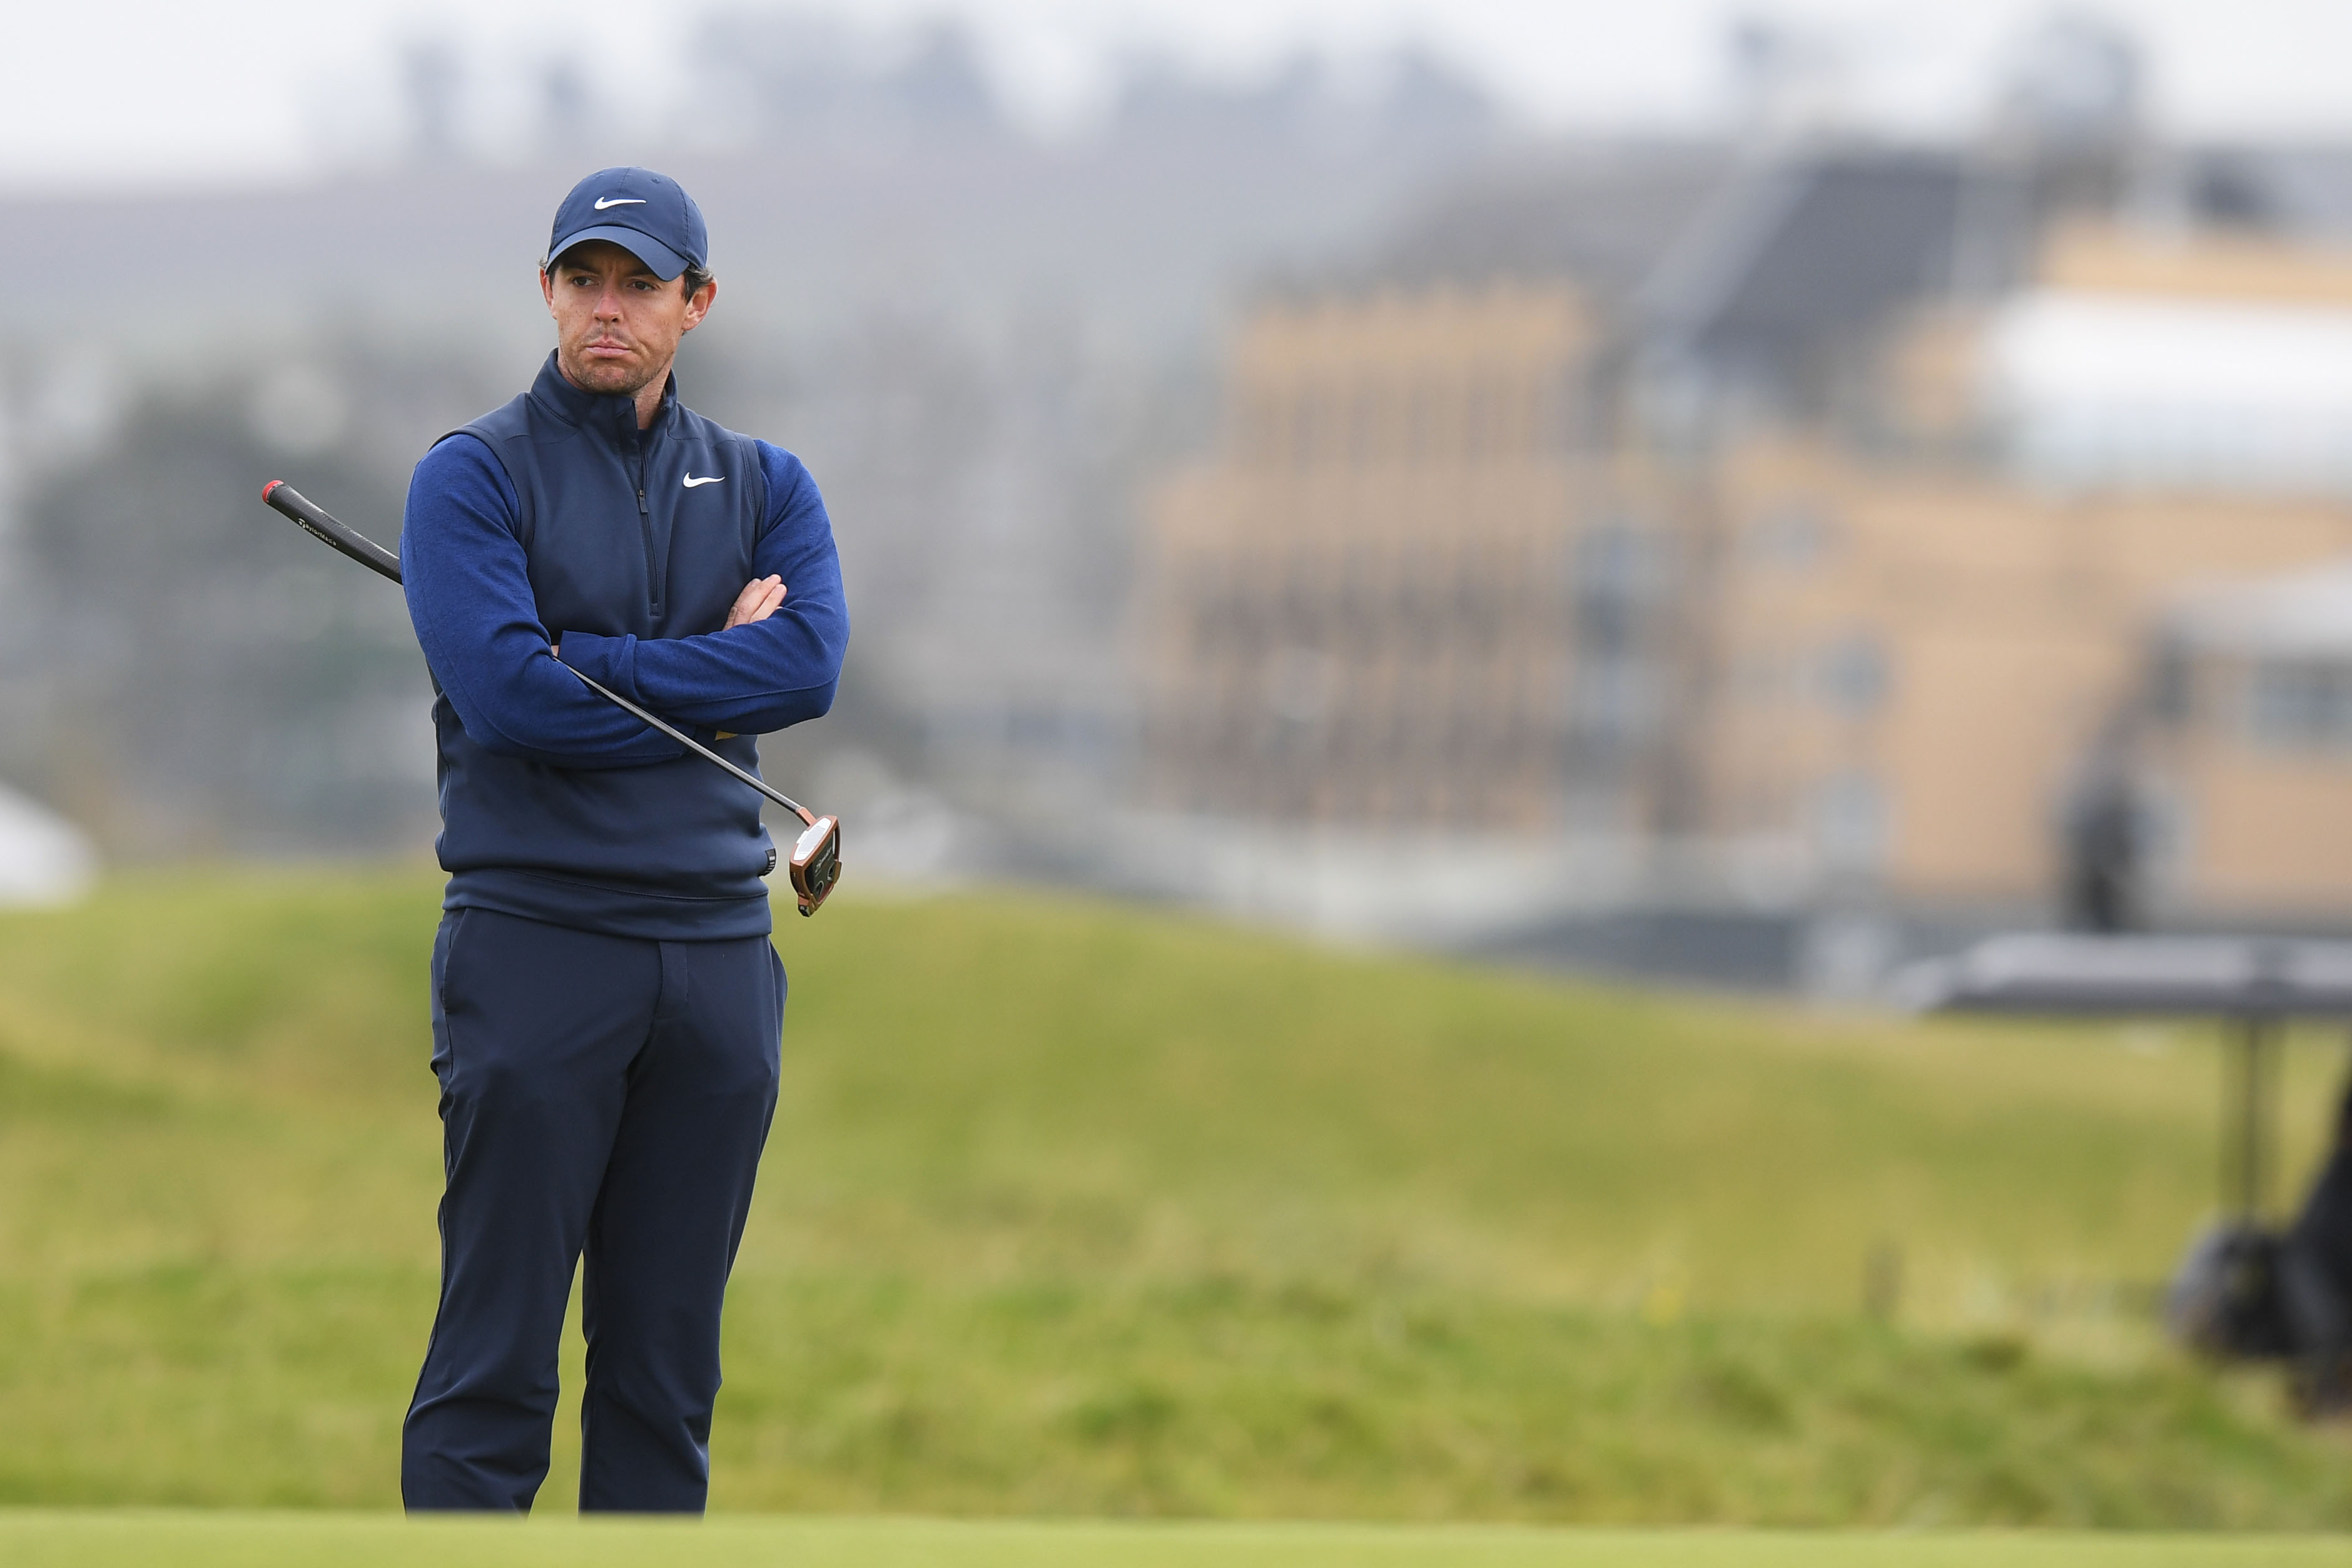 Rory McIlroy during the fourth day of the Alfred Dunhill Links Championship at St Andrews. (Photo by Ross Parker / SNS Group).